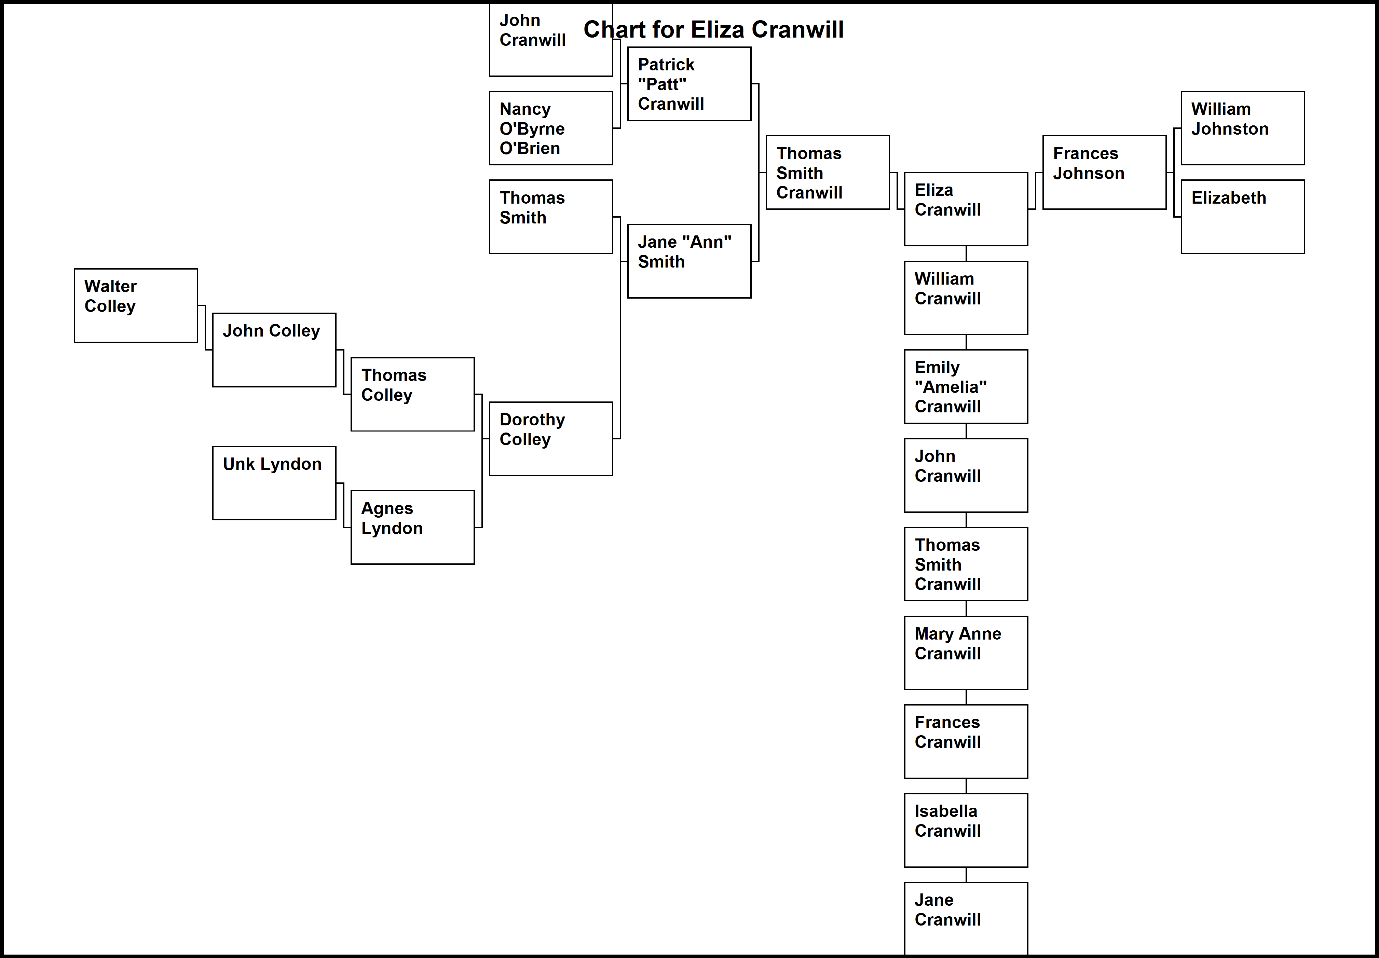 C:\Users\Virginia Rundle\Dropbox\VR\Ancestry Stuff\Kilpatrick\Chart for Eliza Cranwill 3.bmp